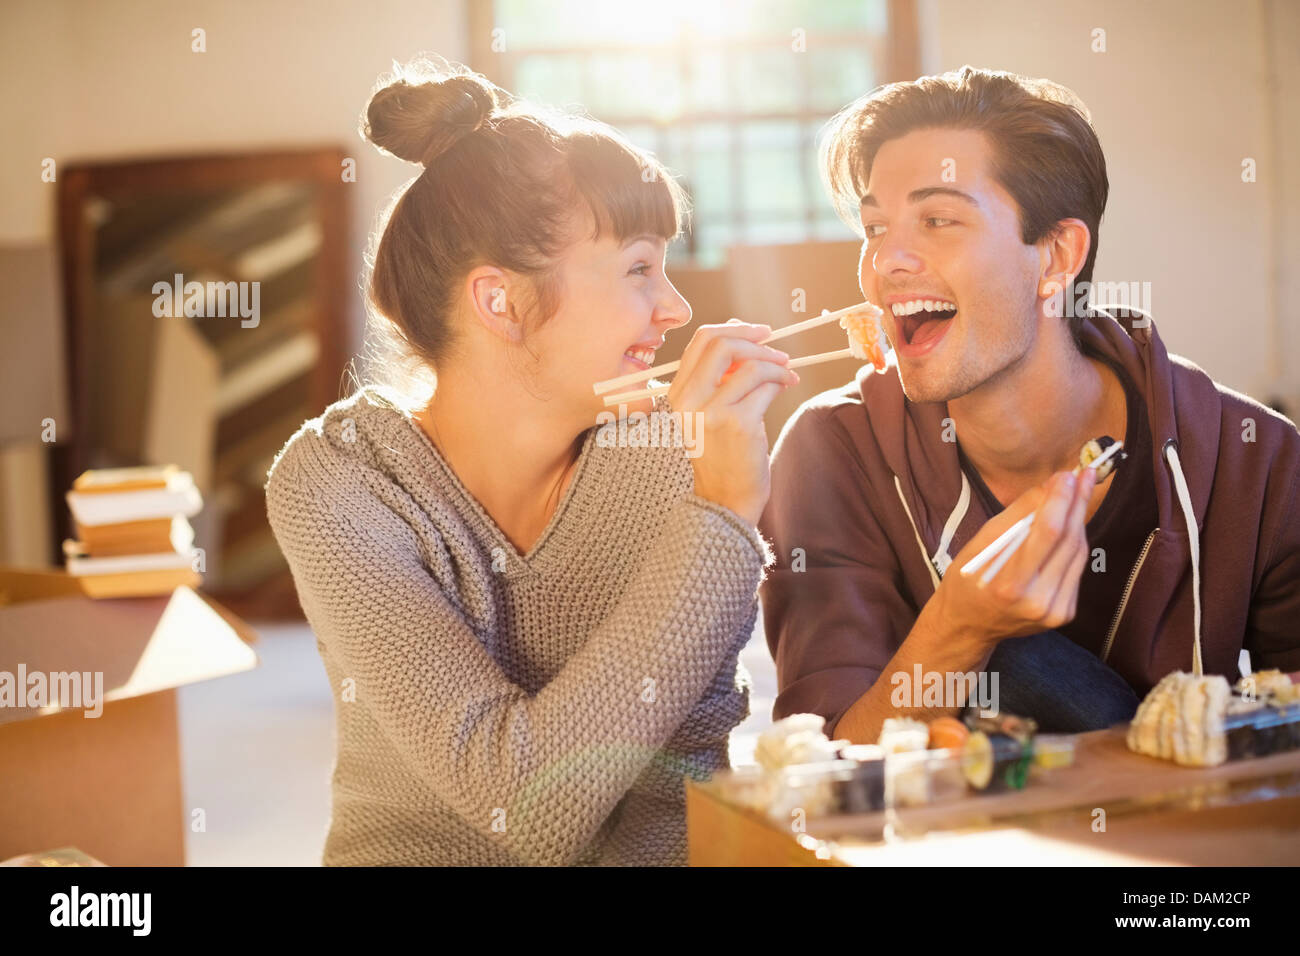 Couple eating sushi together in new home Stock Photo